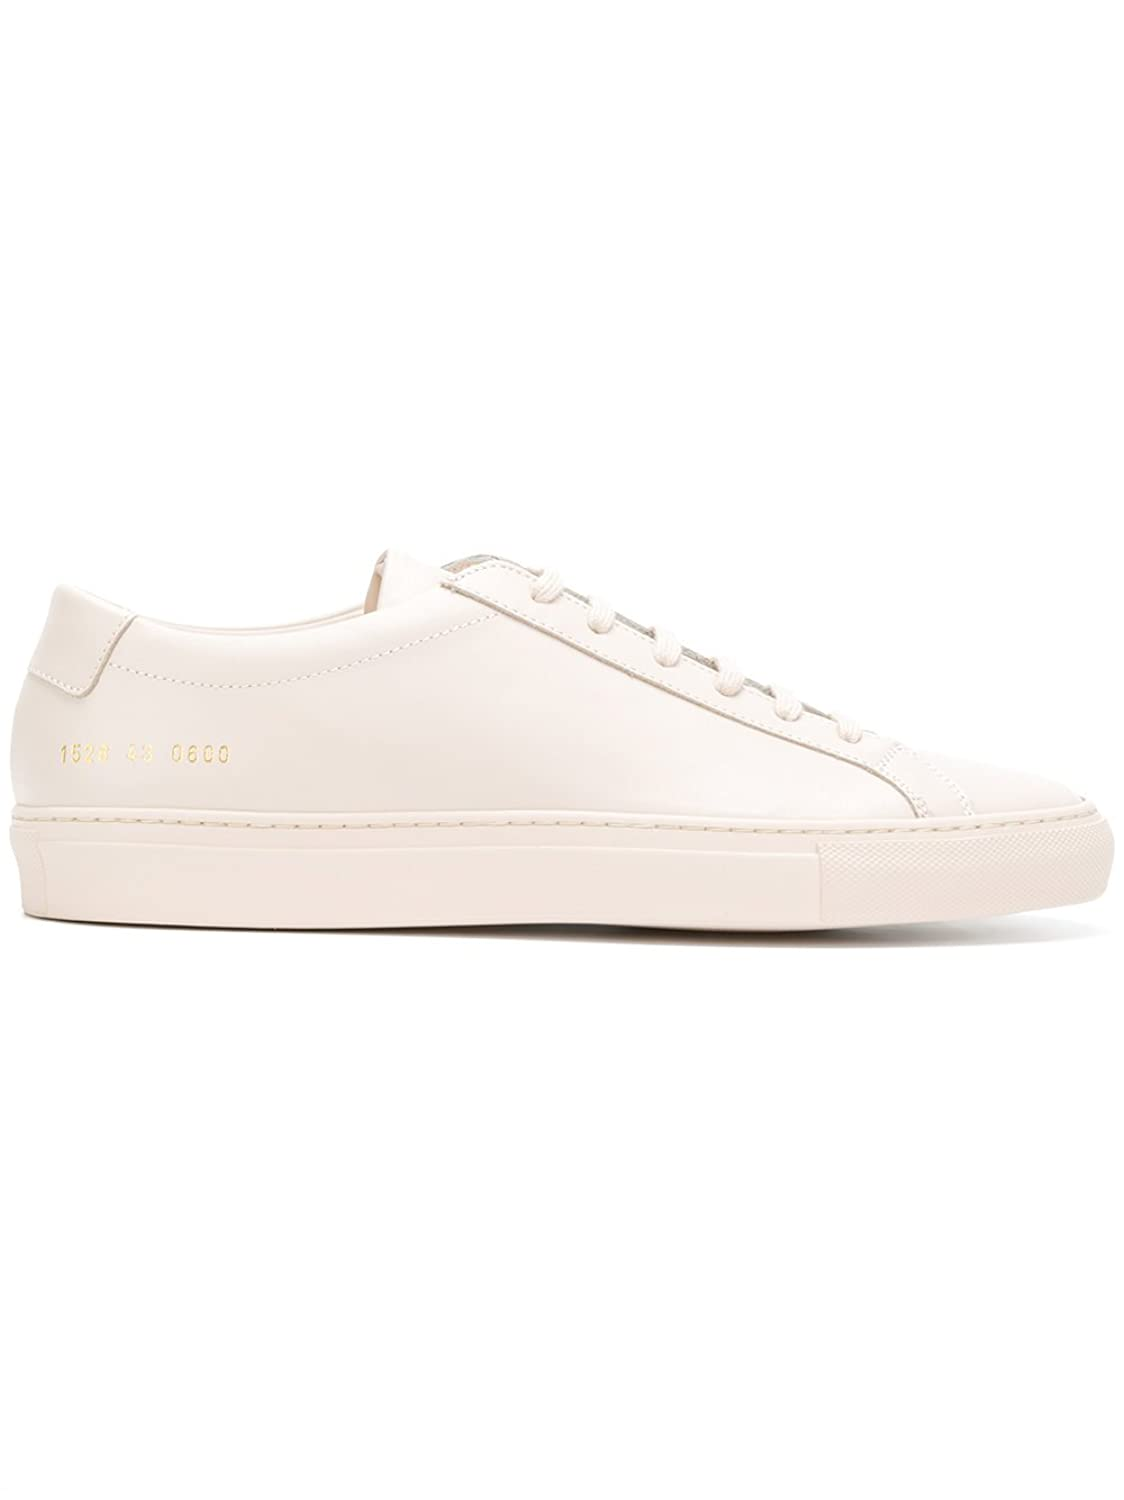 COMMON PROJECTS メンズ B07BRB5V6Q